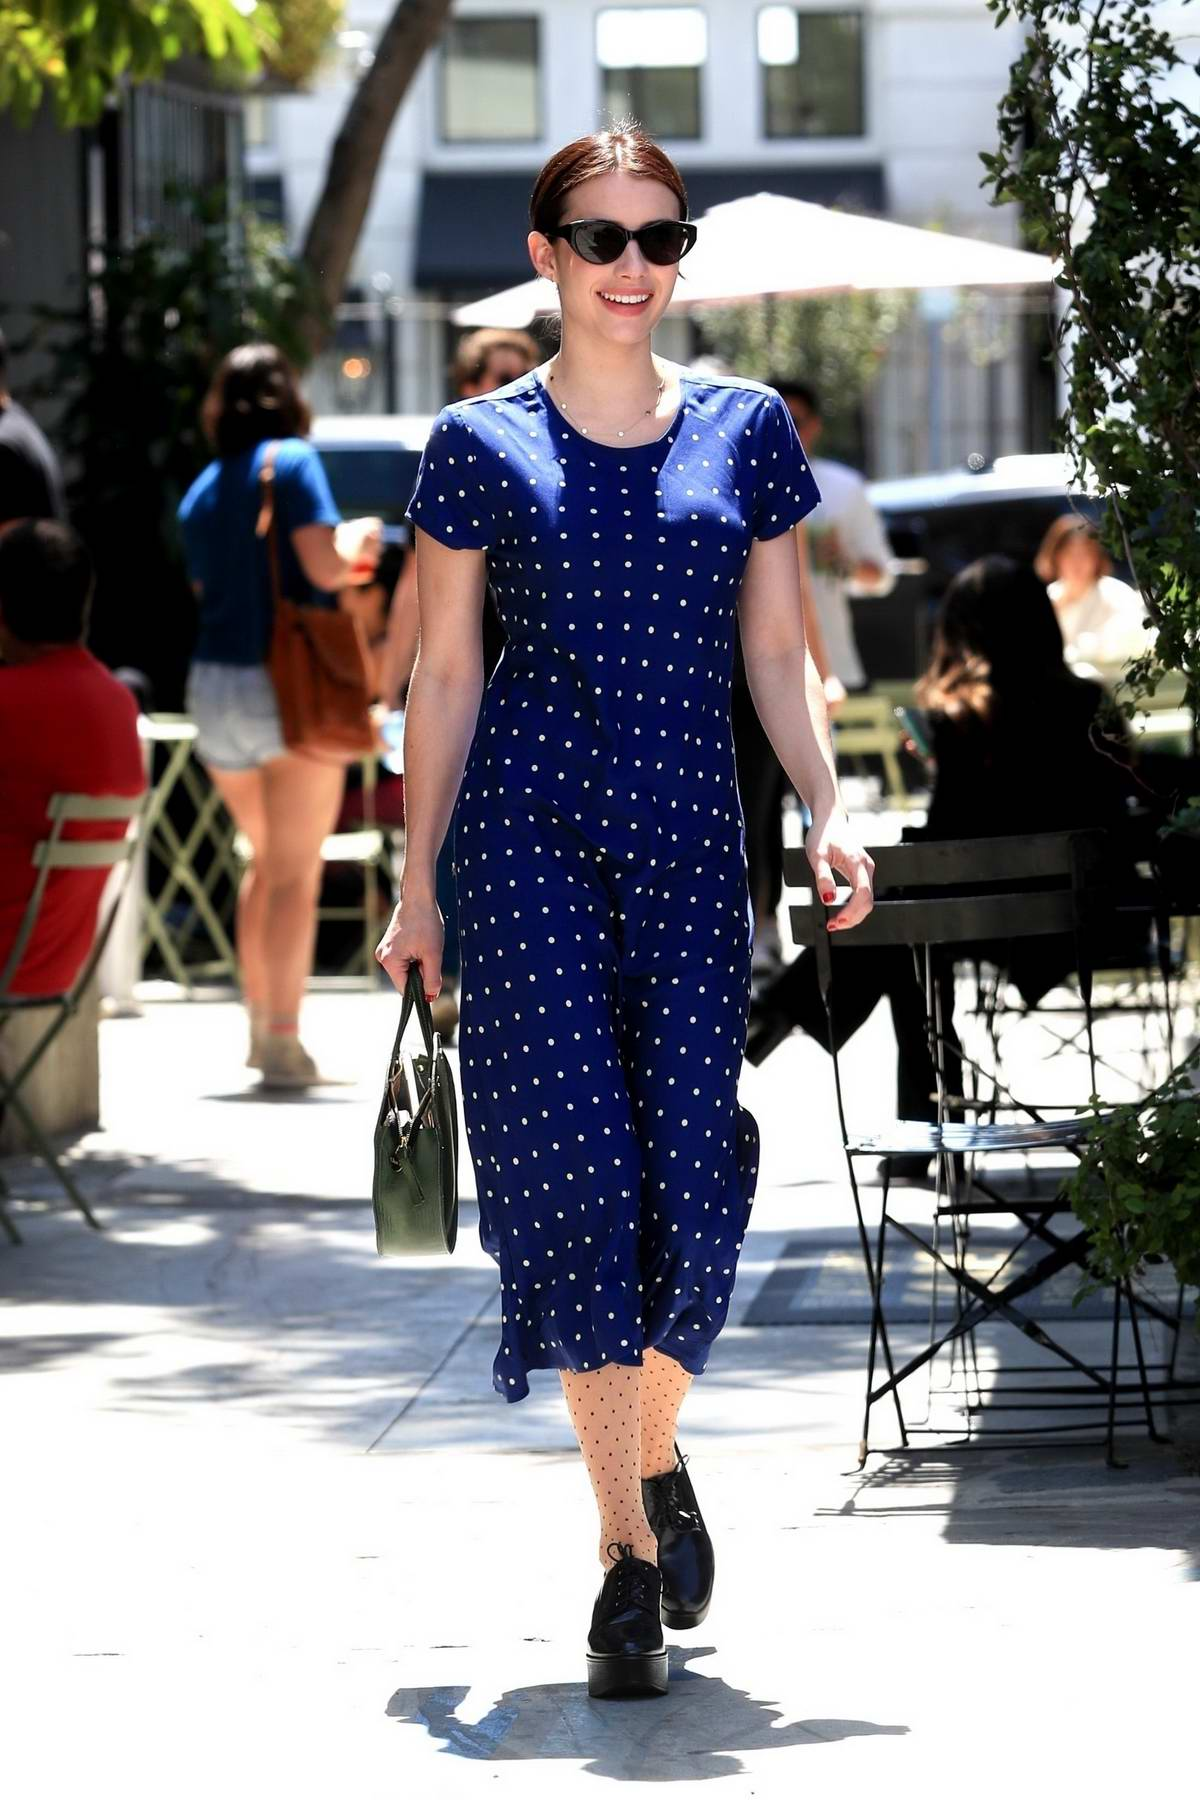 Emma Roberts radiates in a blue polka dot dress as she leaves Nine Zero One in West Hollywood, Los Angeles